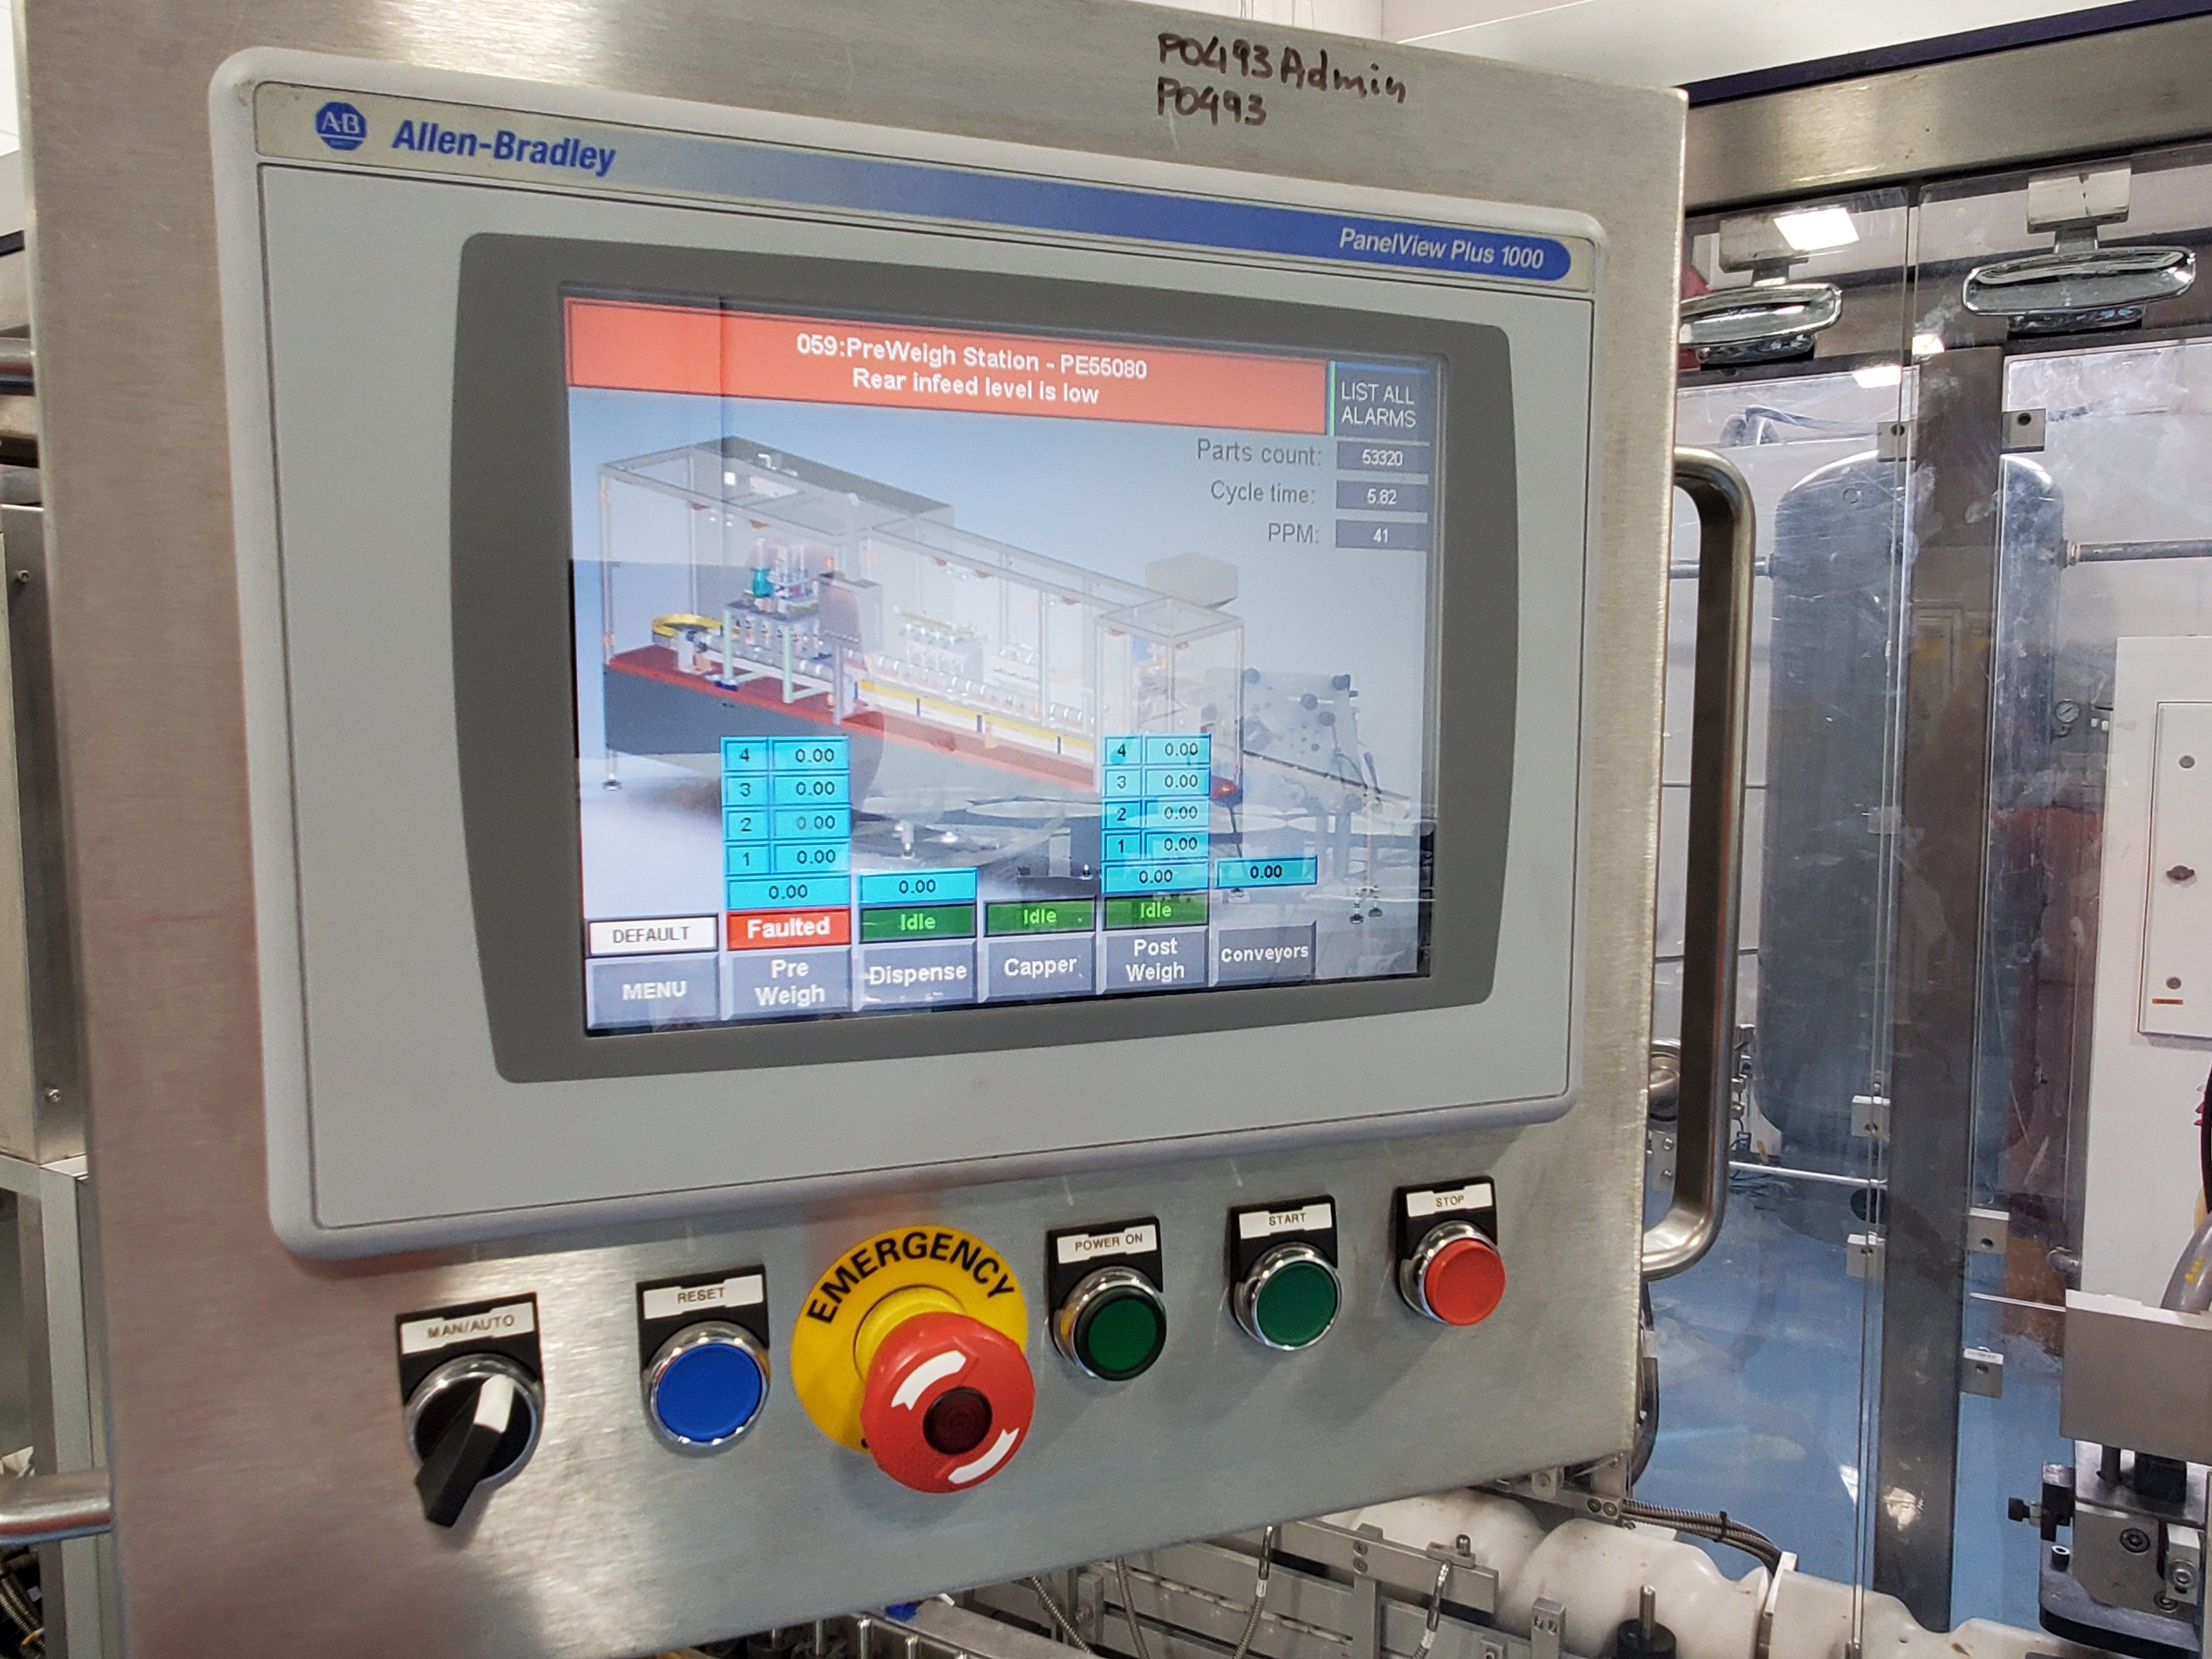 Hibar gel liquid filling line, model P0493, stainless steel construction, intermittent motion, - Image 2 of 3